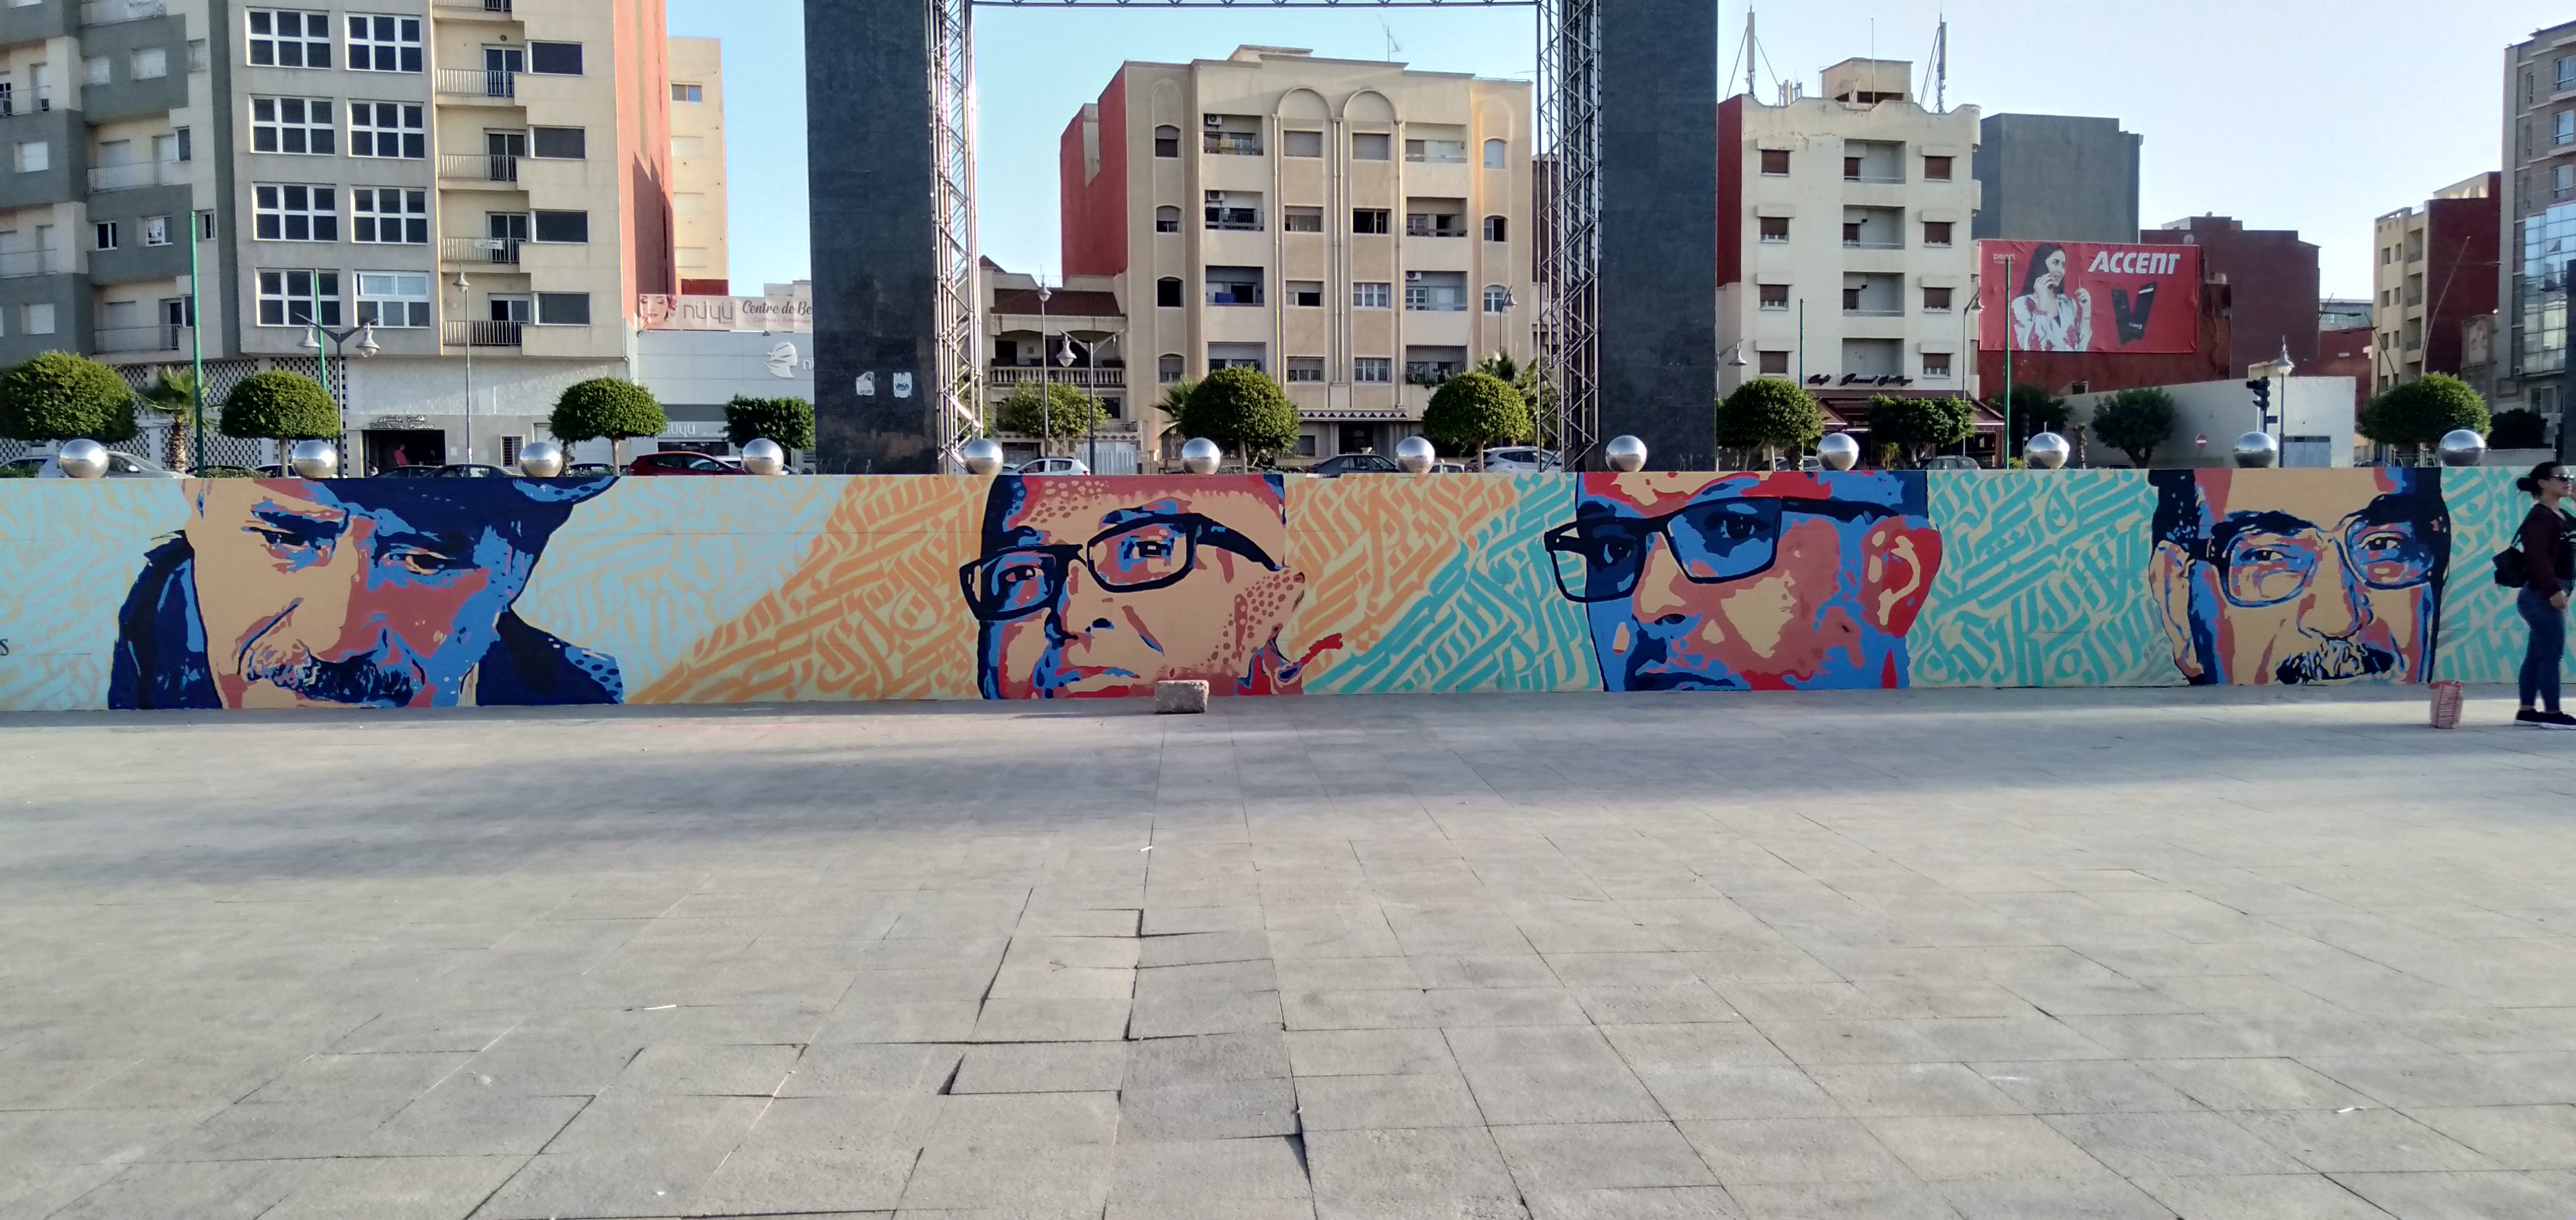 Collectif Tzouri, Mural in Oujda, Morocco 2019. Photo by Chourouq Nasri